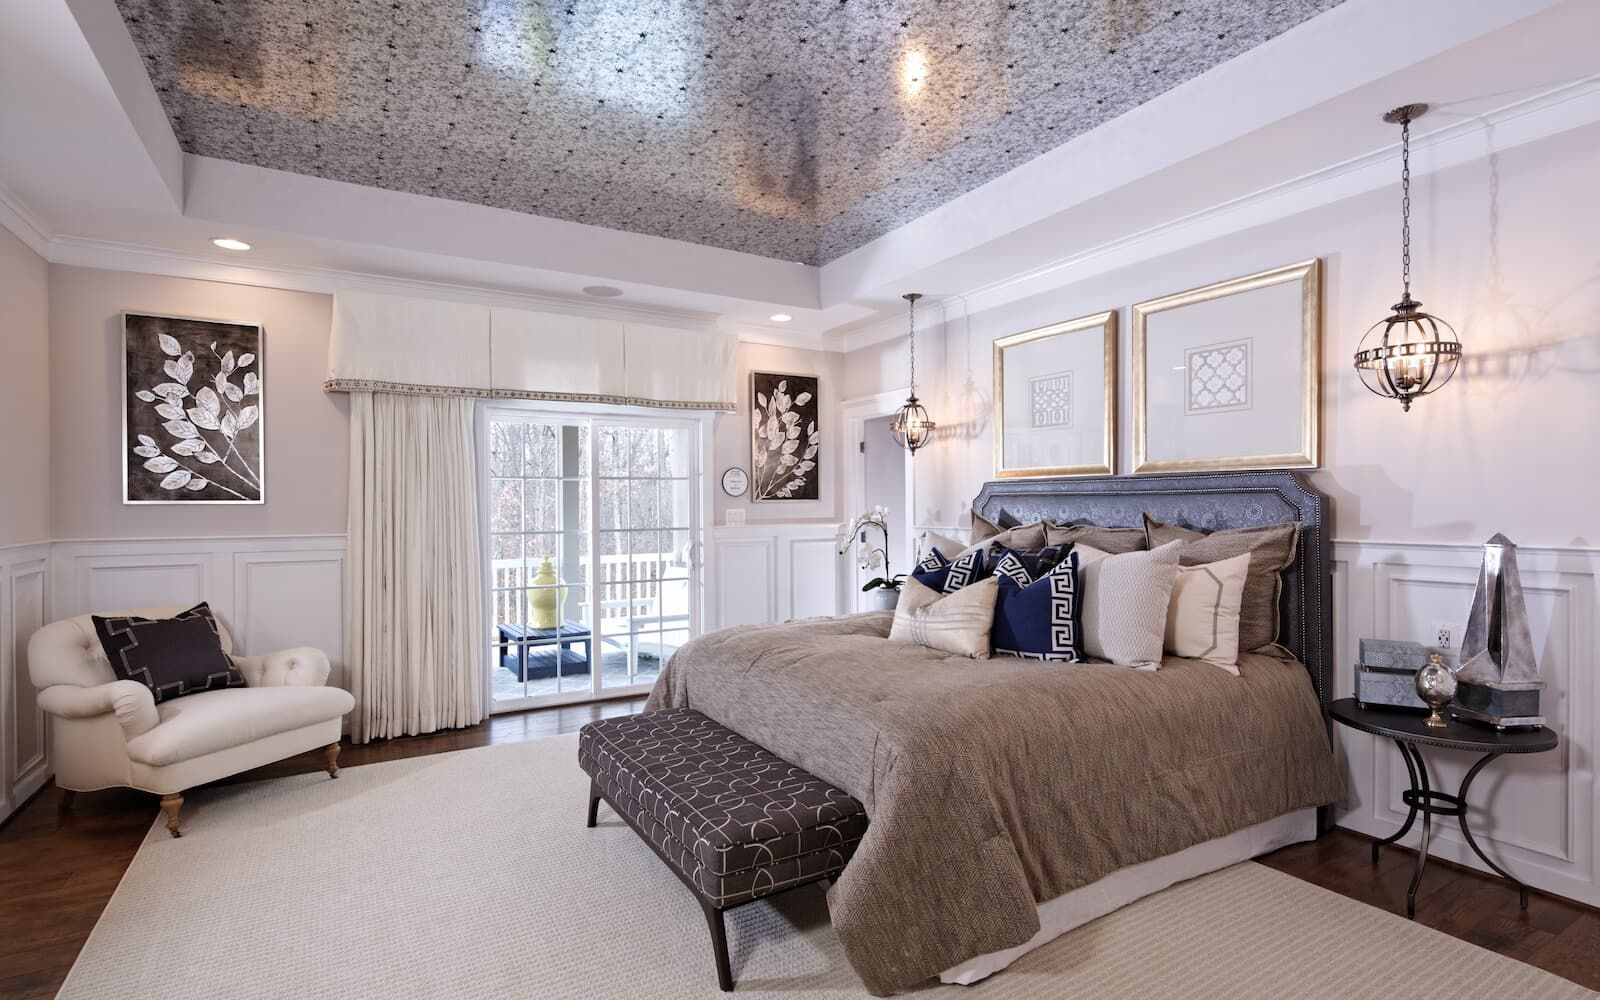 Bedroom featured in the Kensington By Brookfield Residential in Baltimore, MD